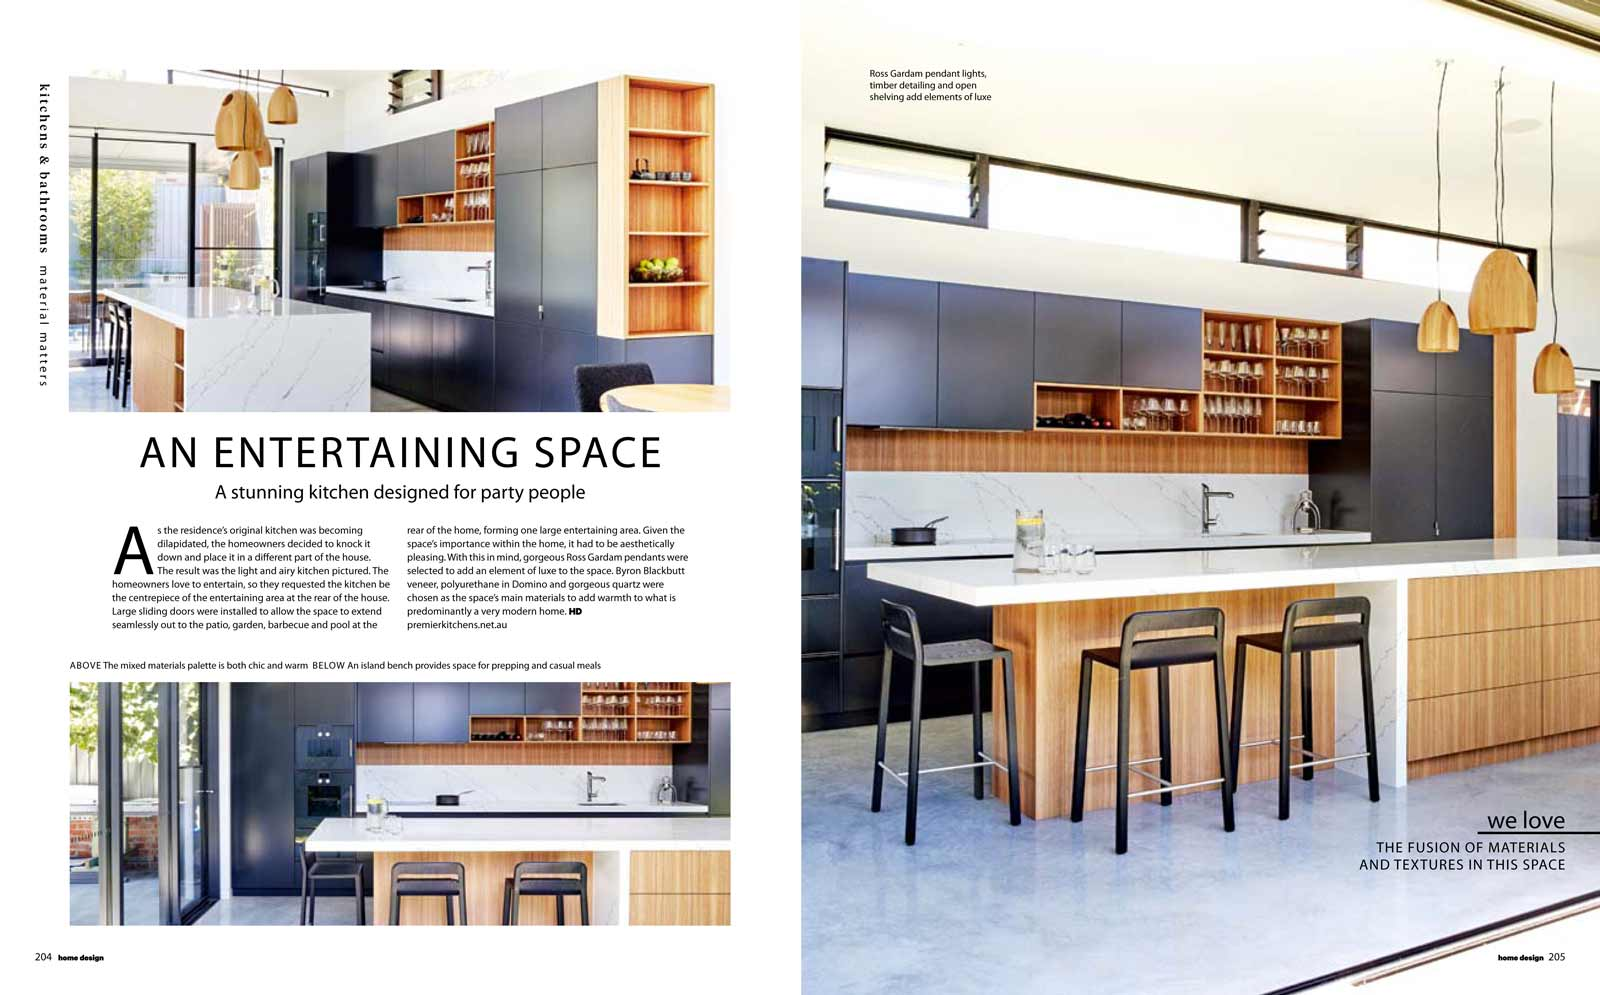 Home Design magazine article featuring Premier Kitchens Australia Cammeray kitchen design